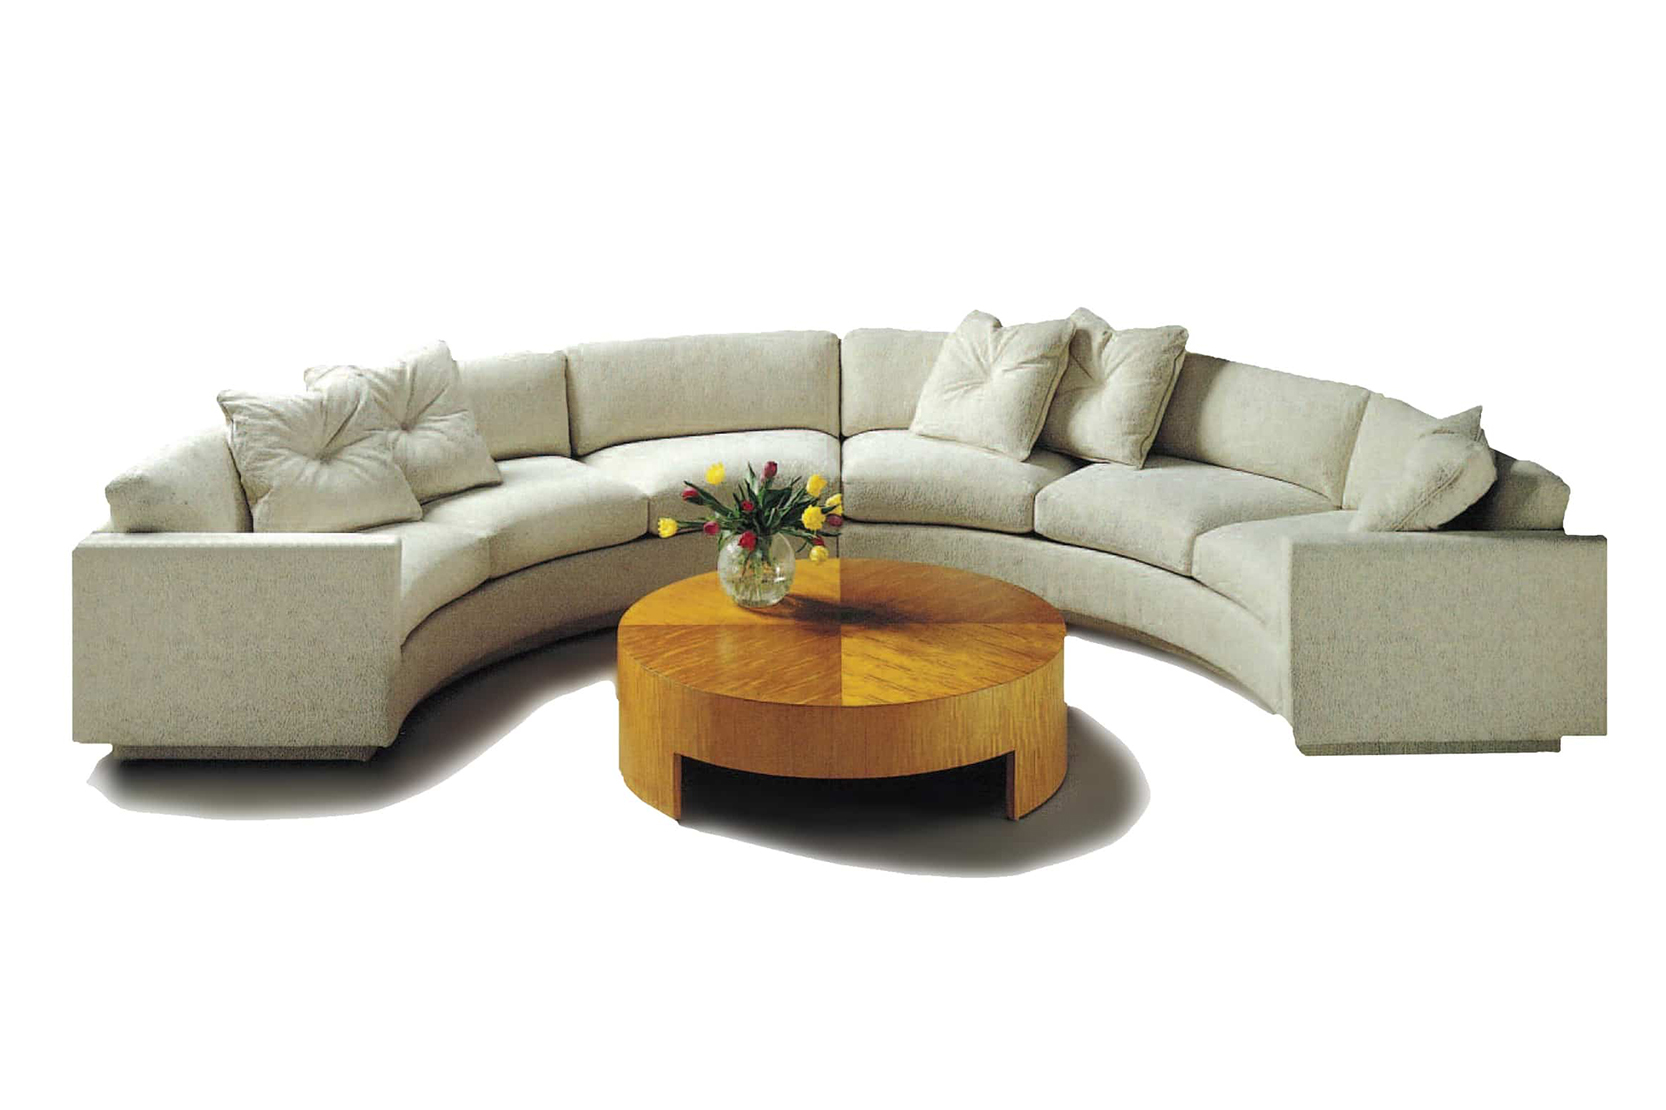 825 design classic sectional